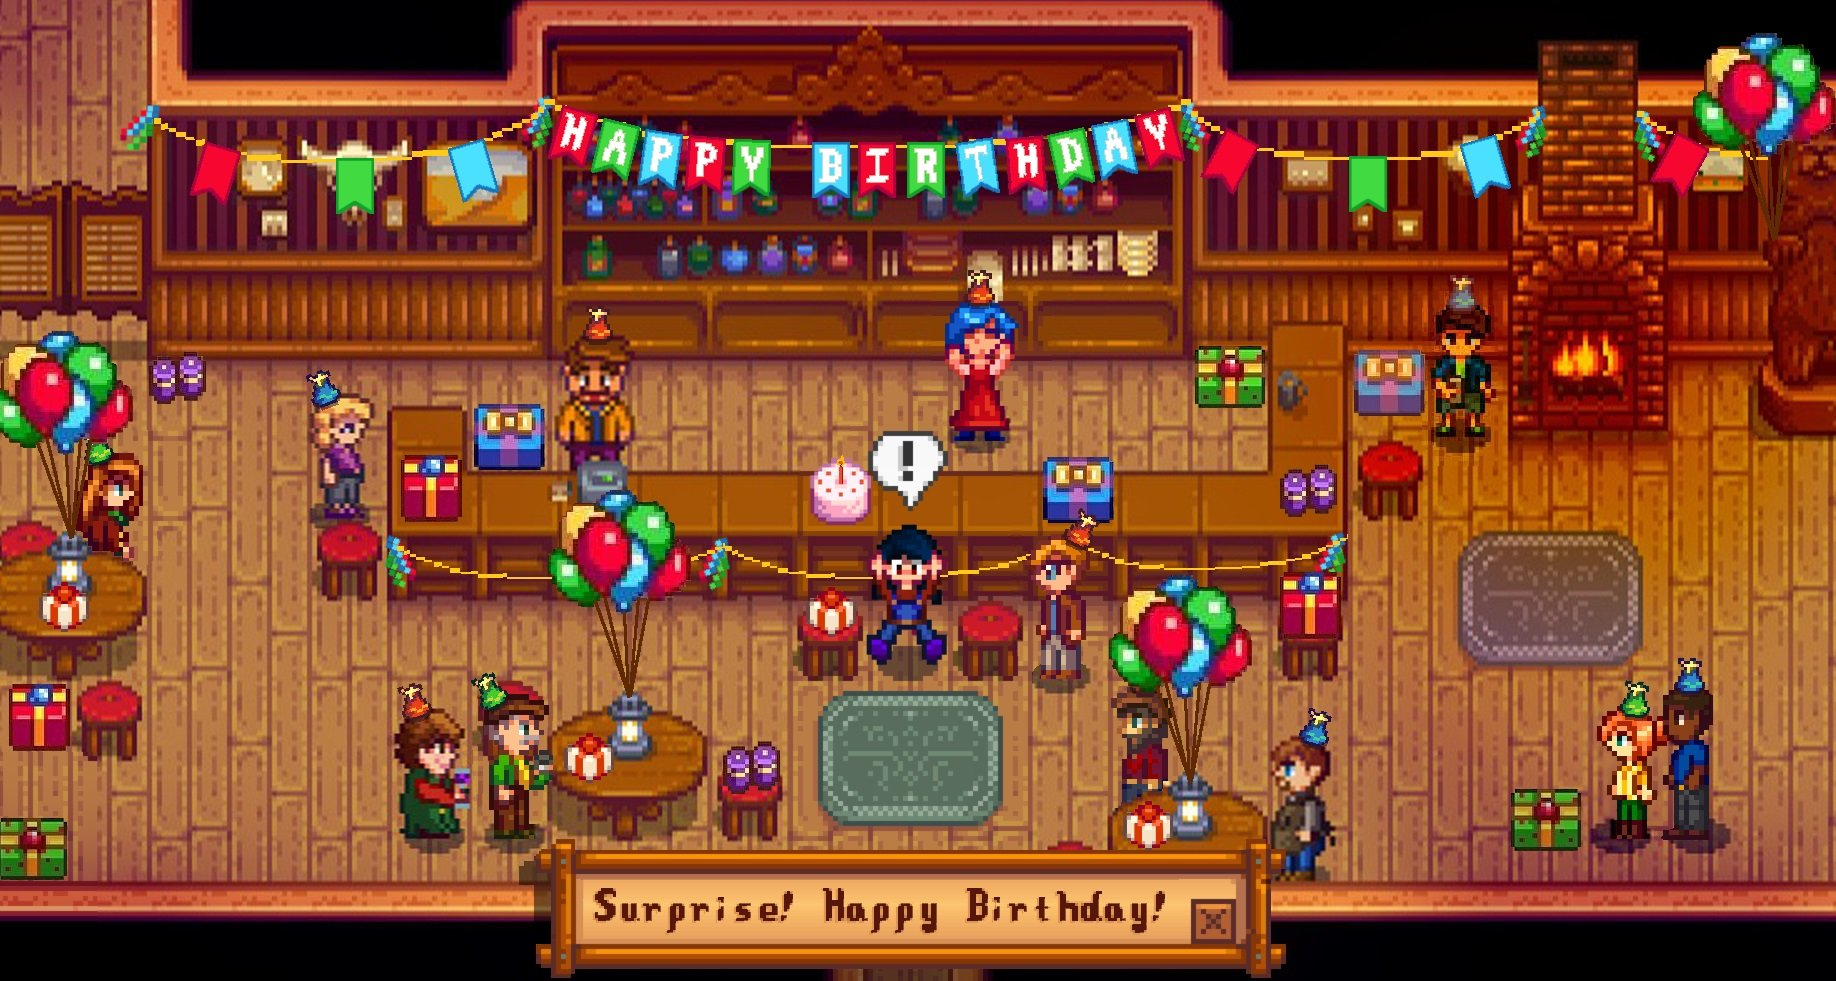 Fan imagines a world where Stardew Valley celebrates your birthday screenshot